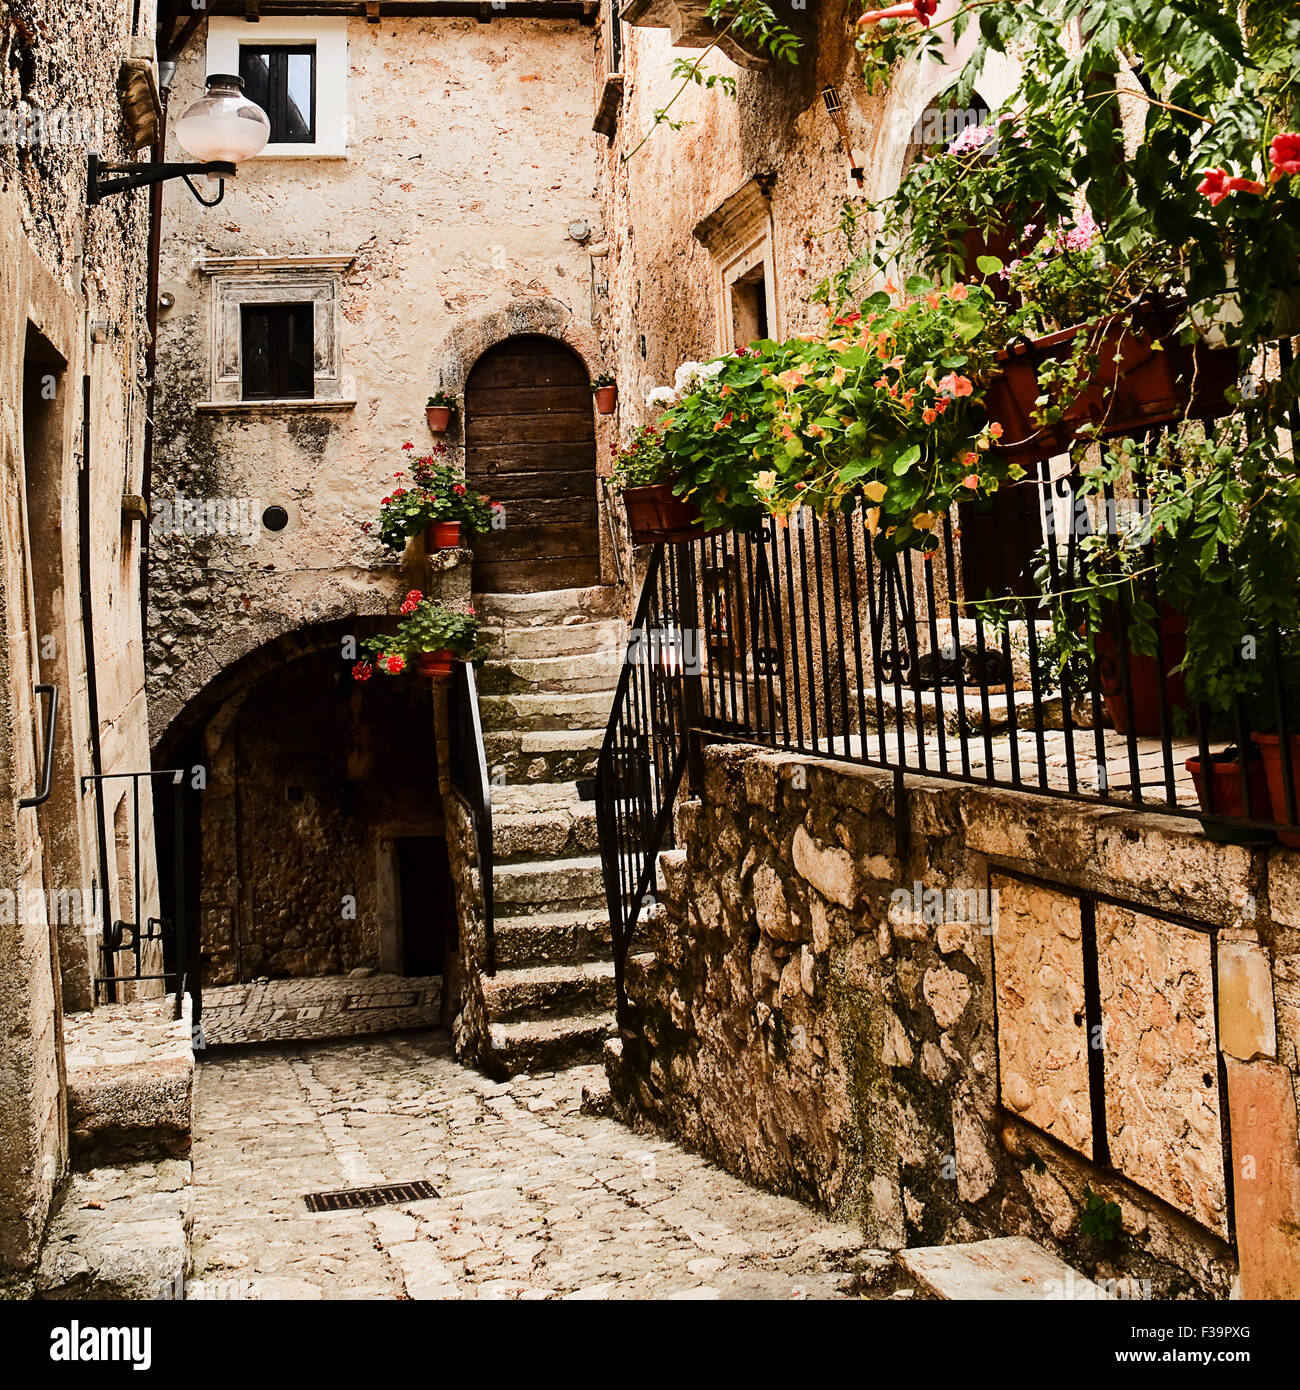 Santo Stefano di Sessanio Italy  city photos : Santo Stefano Di Sessanio, Famous Village In Italy Stock Photo ...